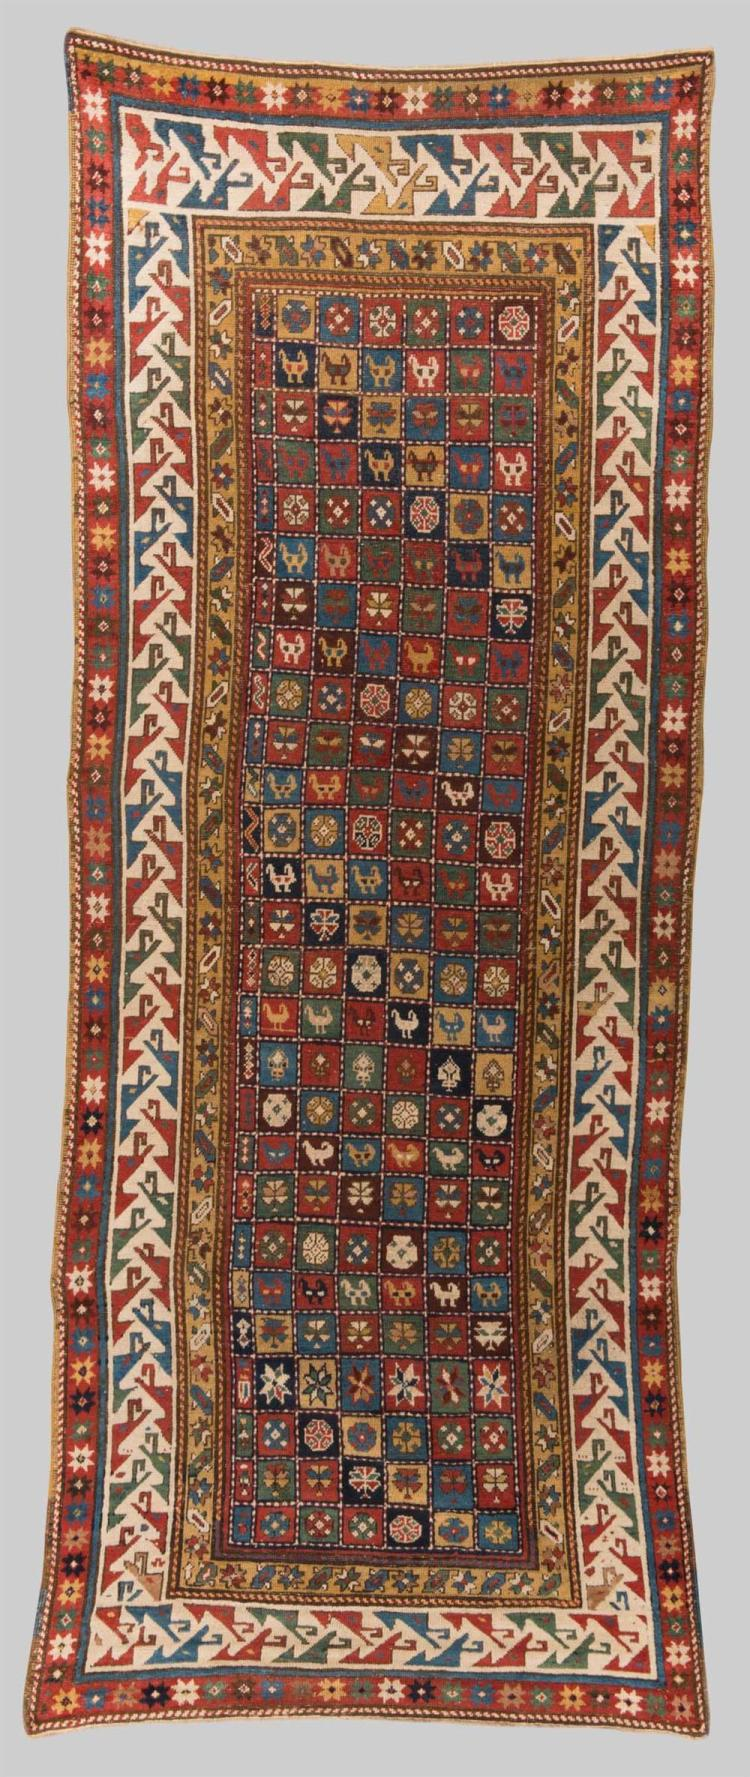 CAUCASIAN RUG, second half 19th century; 9 ft. 8 in. x 3 ft. 9 in.